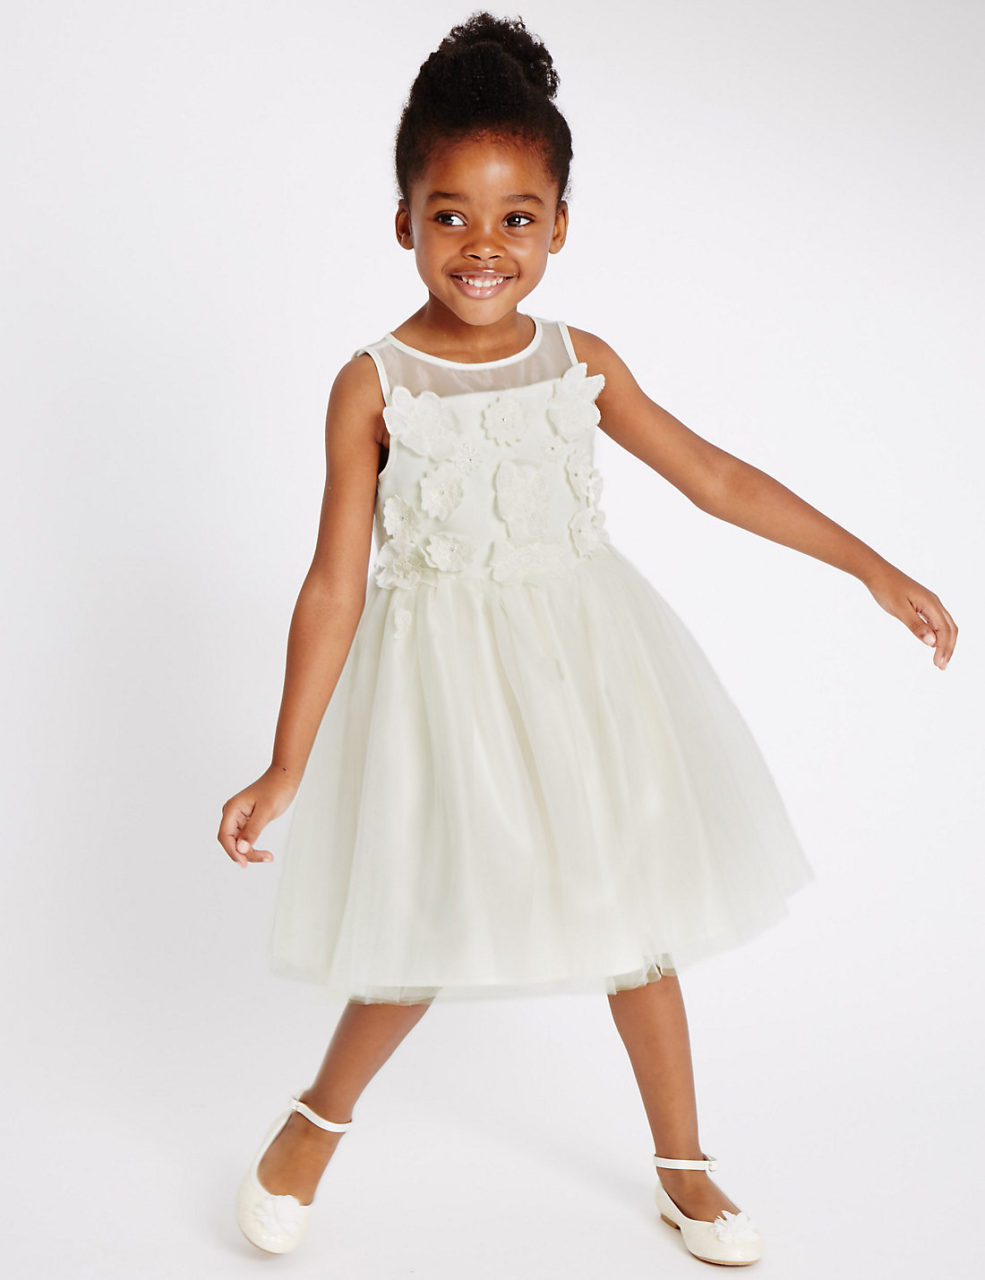 18 Adorable Flower Girl Dresses from the High Street | weddingsonline